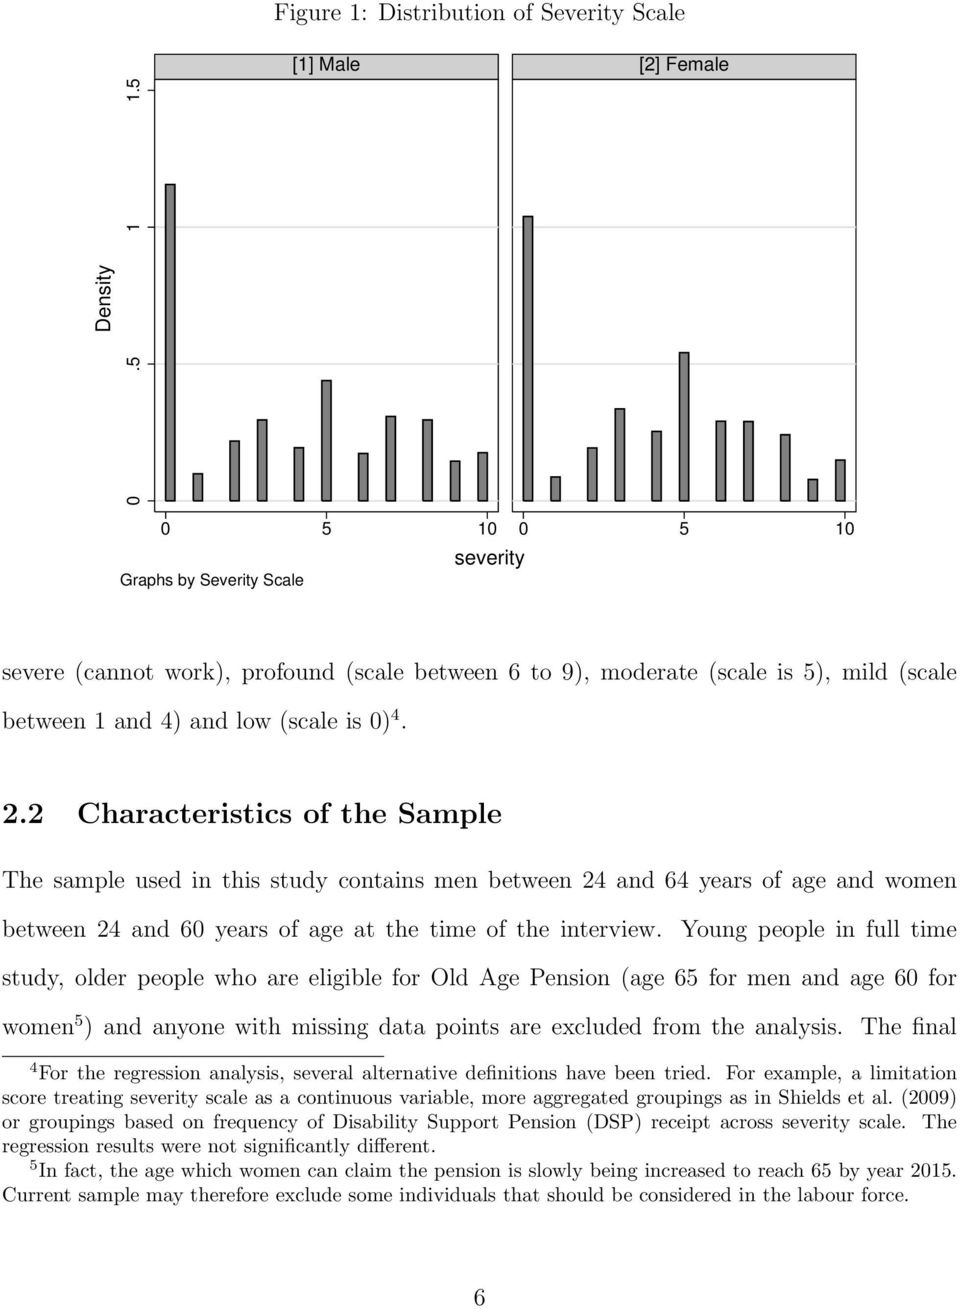 2 Characteristics of the Sample The sample used in this study contains men between 24 and 64 years of age and women between 24 and 60 years of age at the time of the interview.